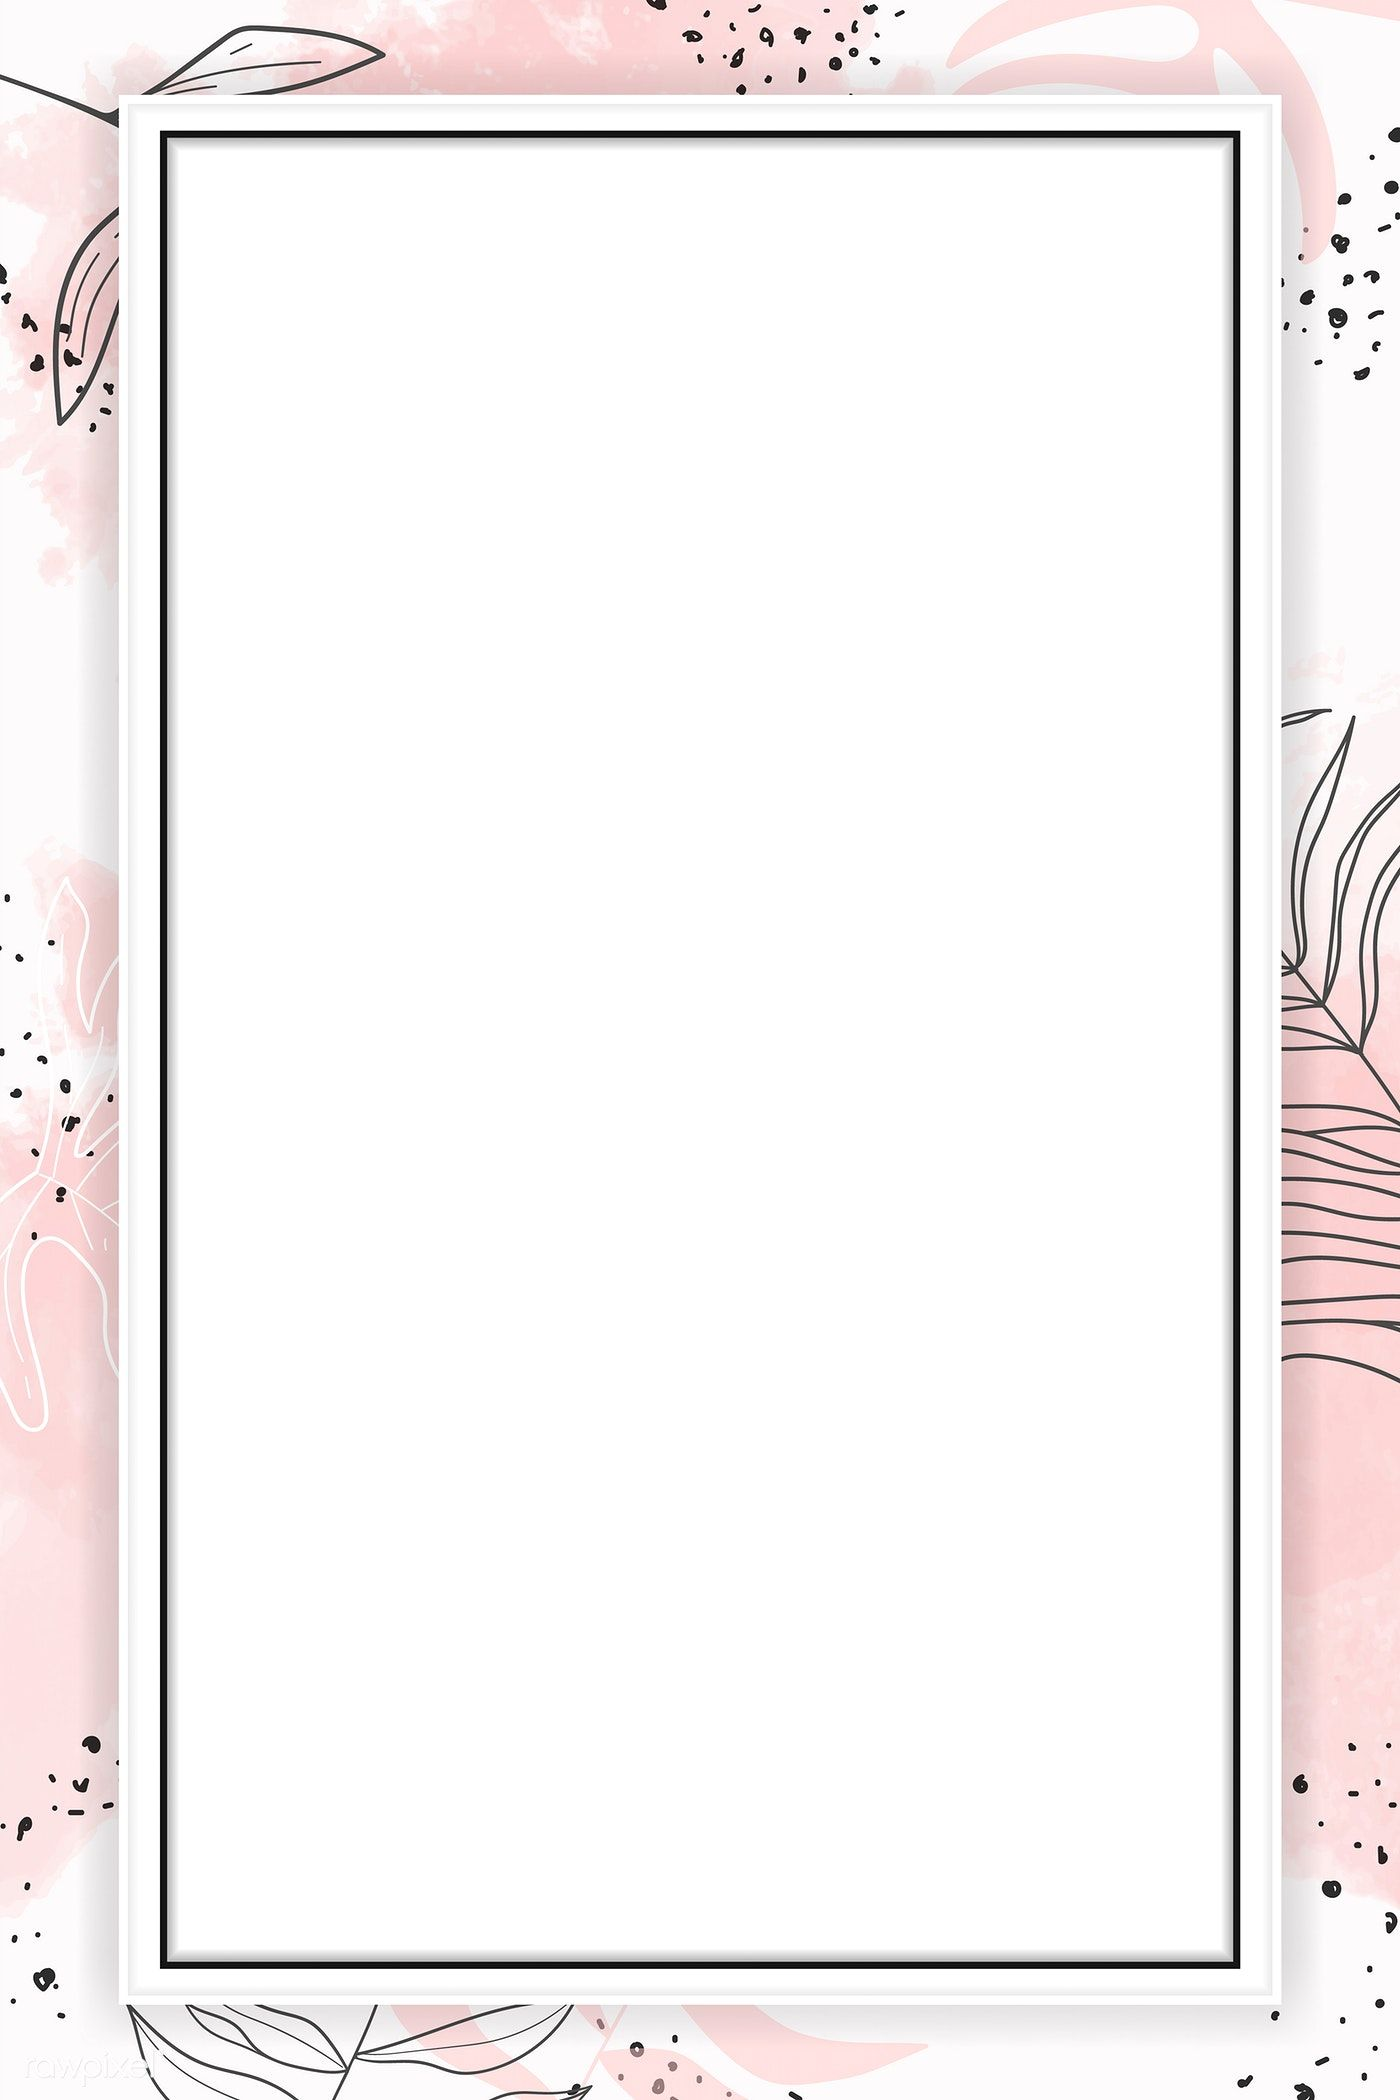 Pink Rectangle Watercolor Frame Vector Premium Image By Rawpixel Com Aum Instagram Frame Template Powerpoint Background Design Instagram Frame